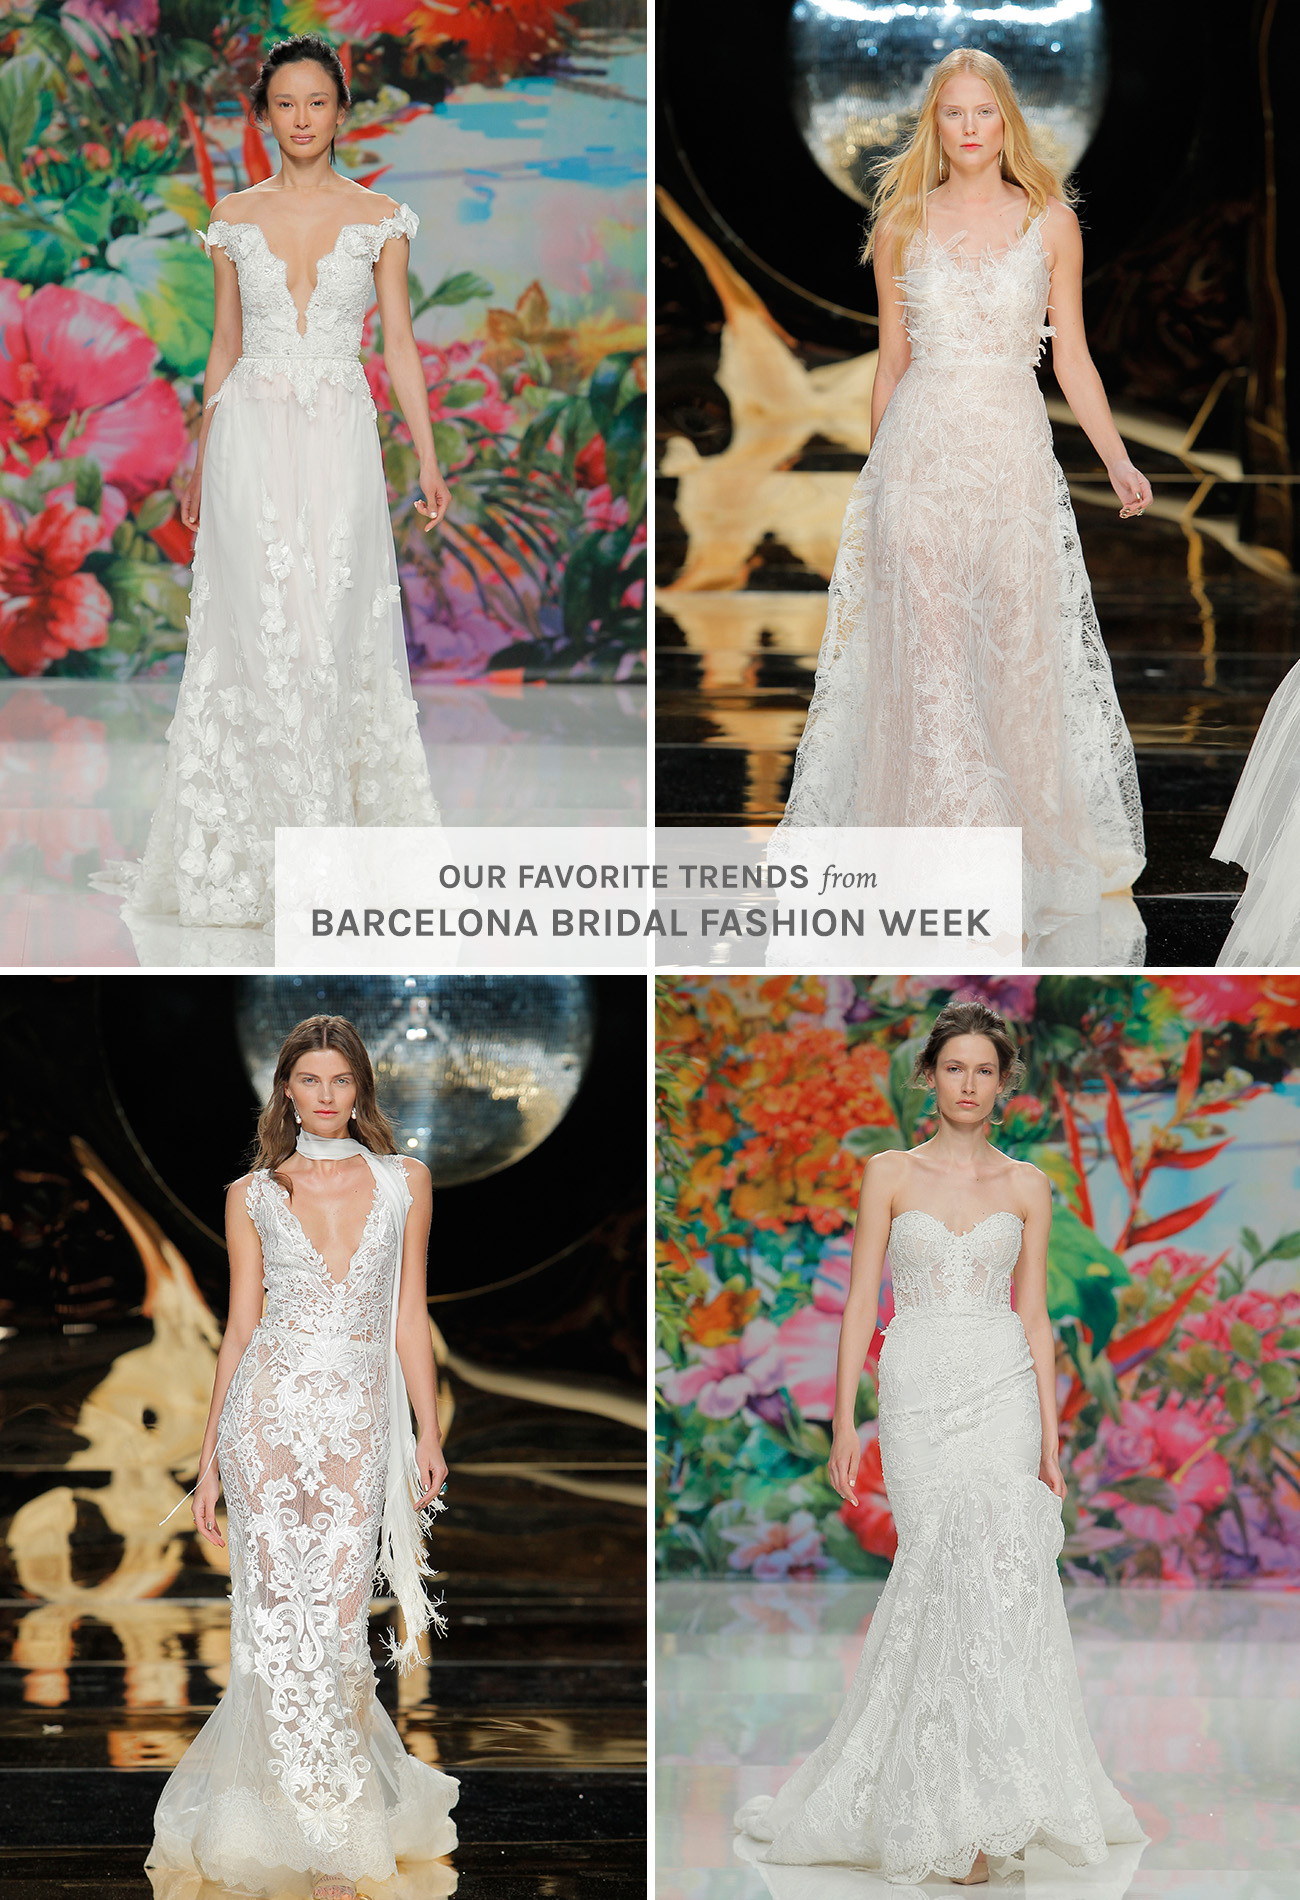 Wedding Dress Trends From Barcelona Bridal Fashion Week 2016